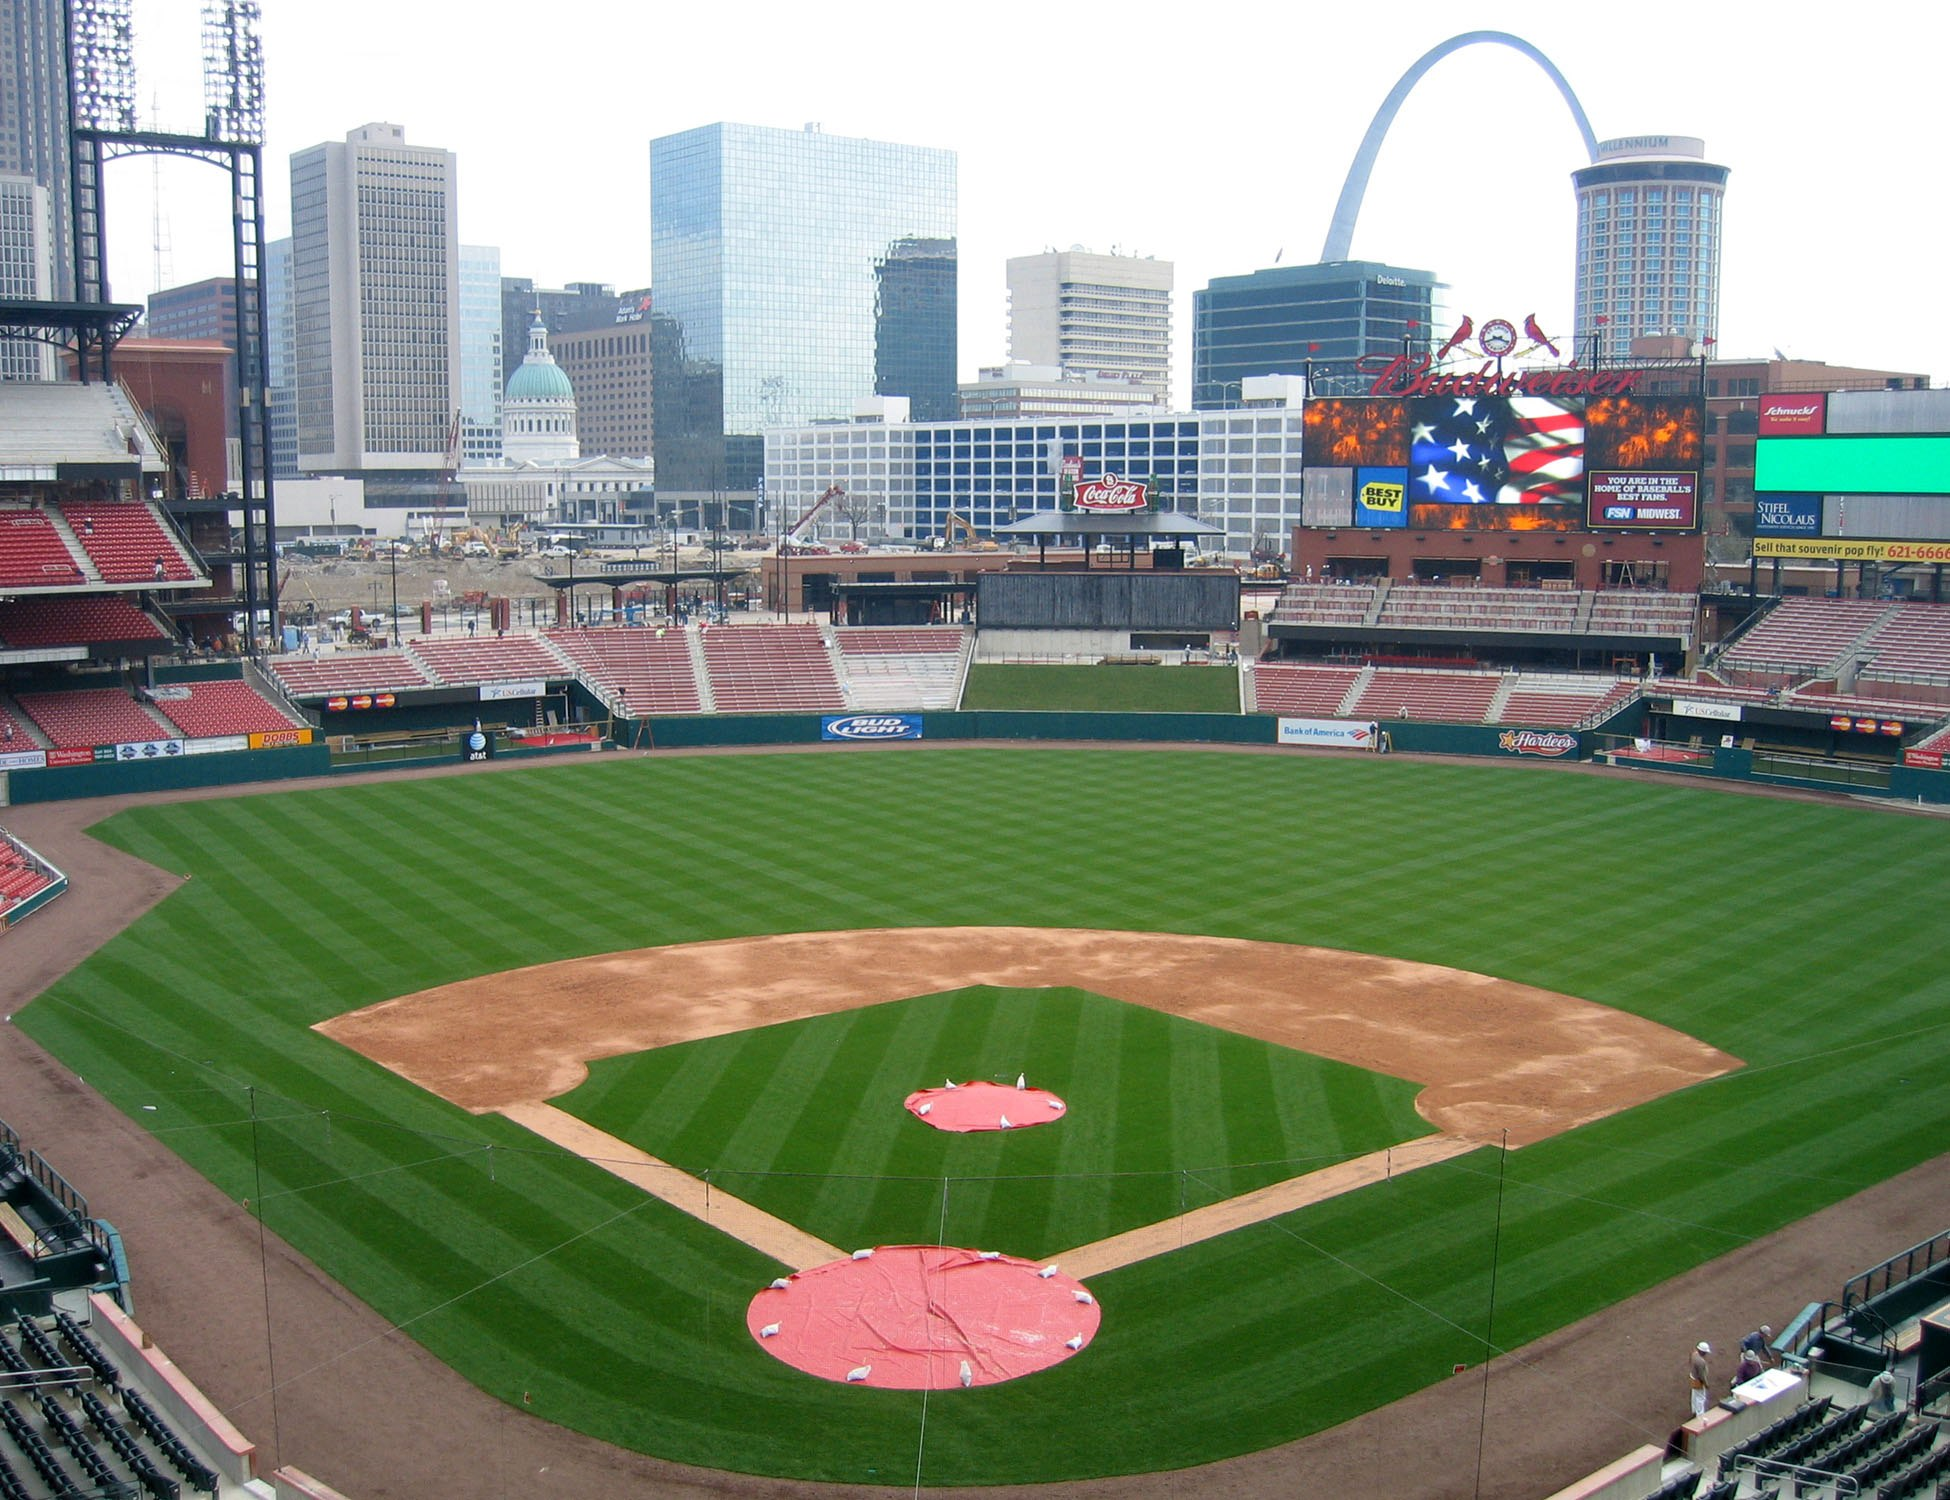 Photo of the field at Busch Stadium, Home of the St. Louis Cardinals